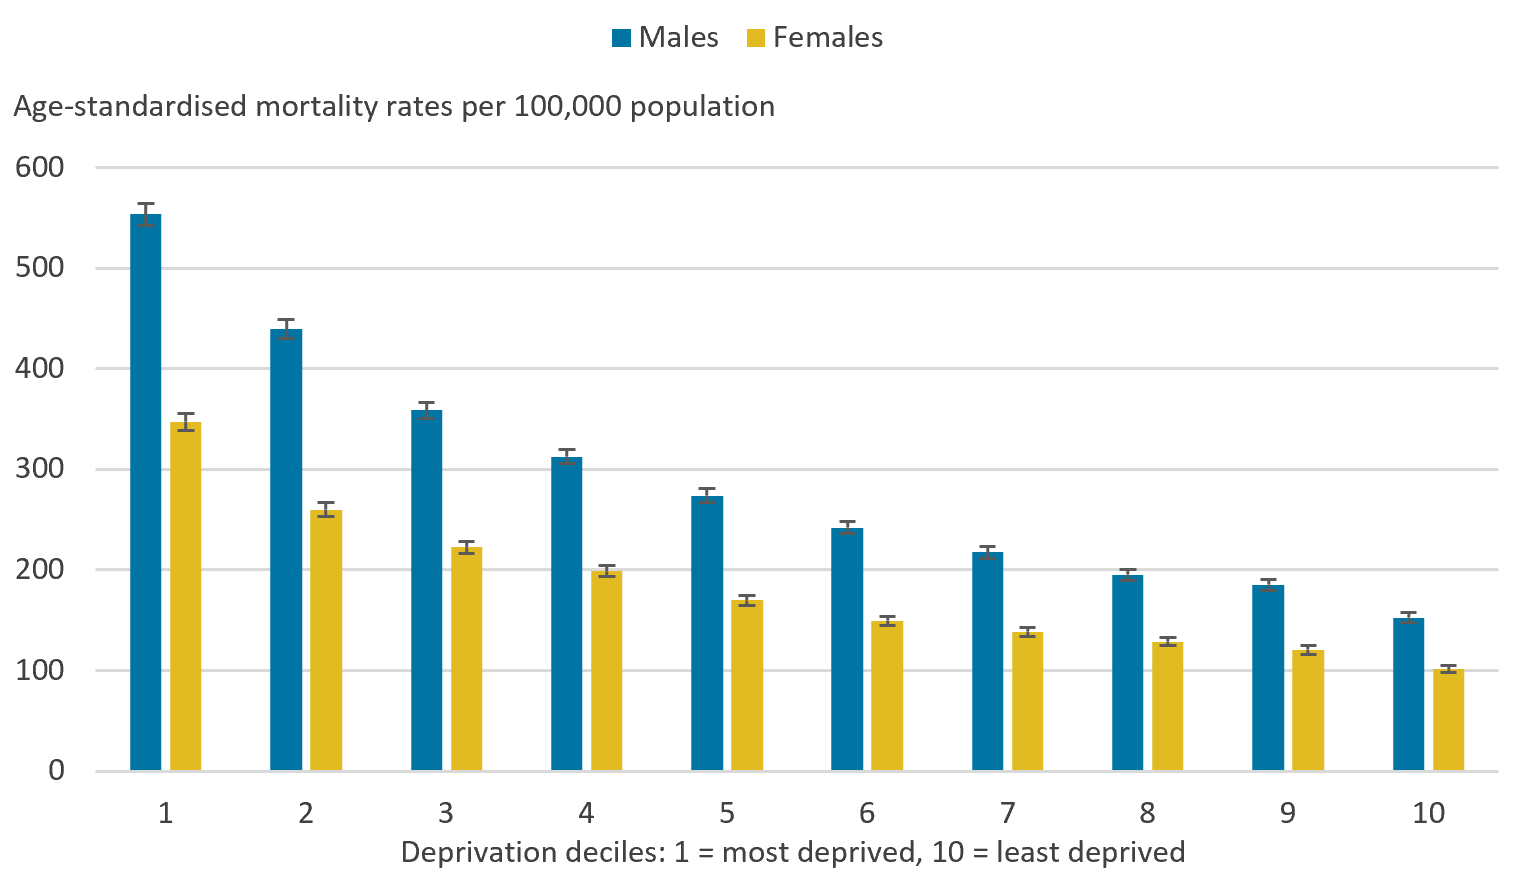 Males and females living in the most deprived areas had statistically significant higher avoidable mortality rates than those living in the least deprived areas.